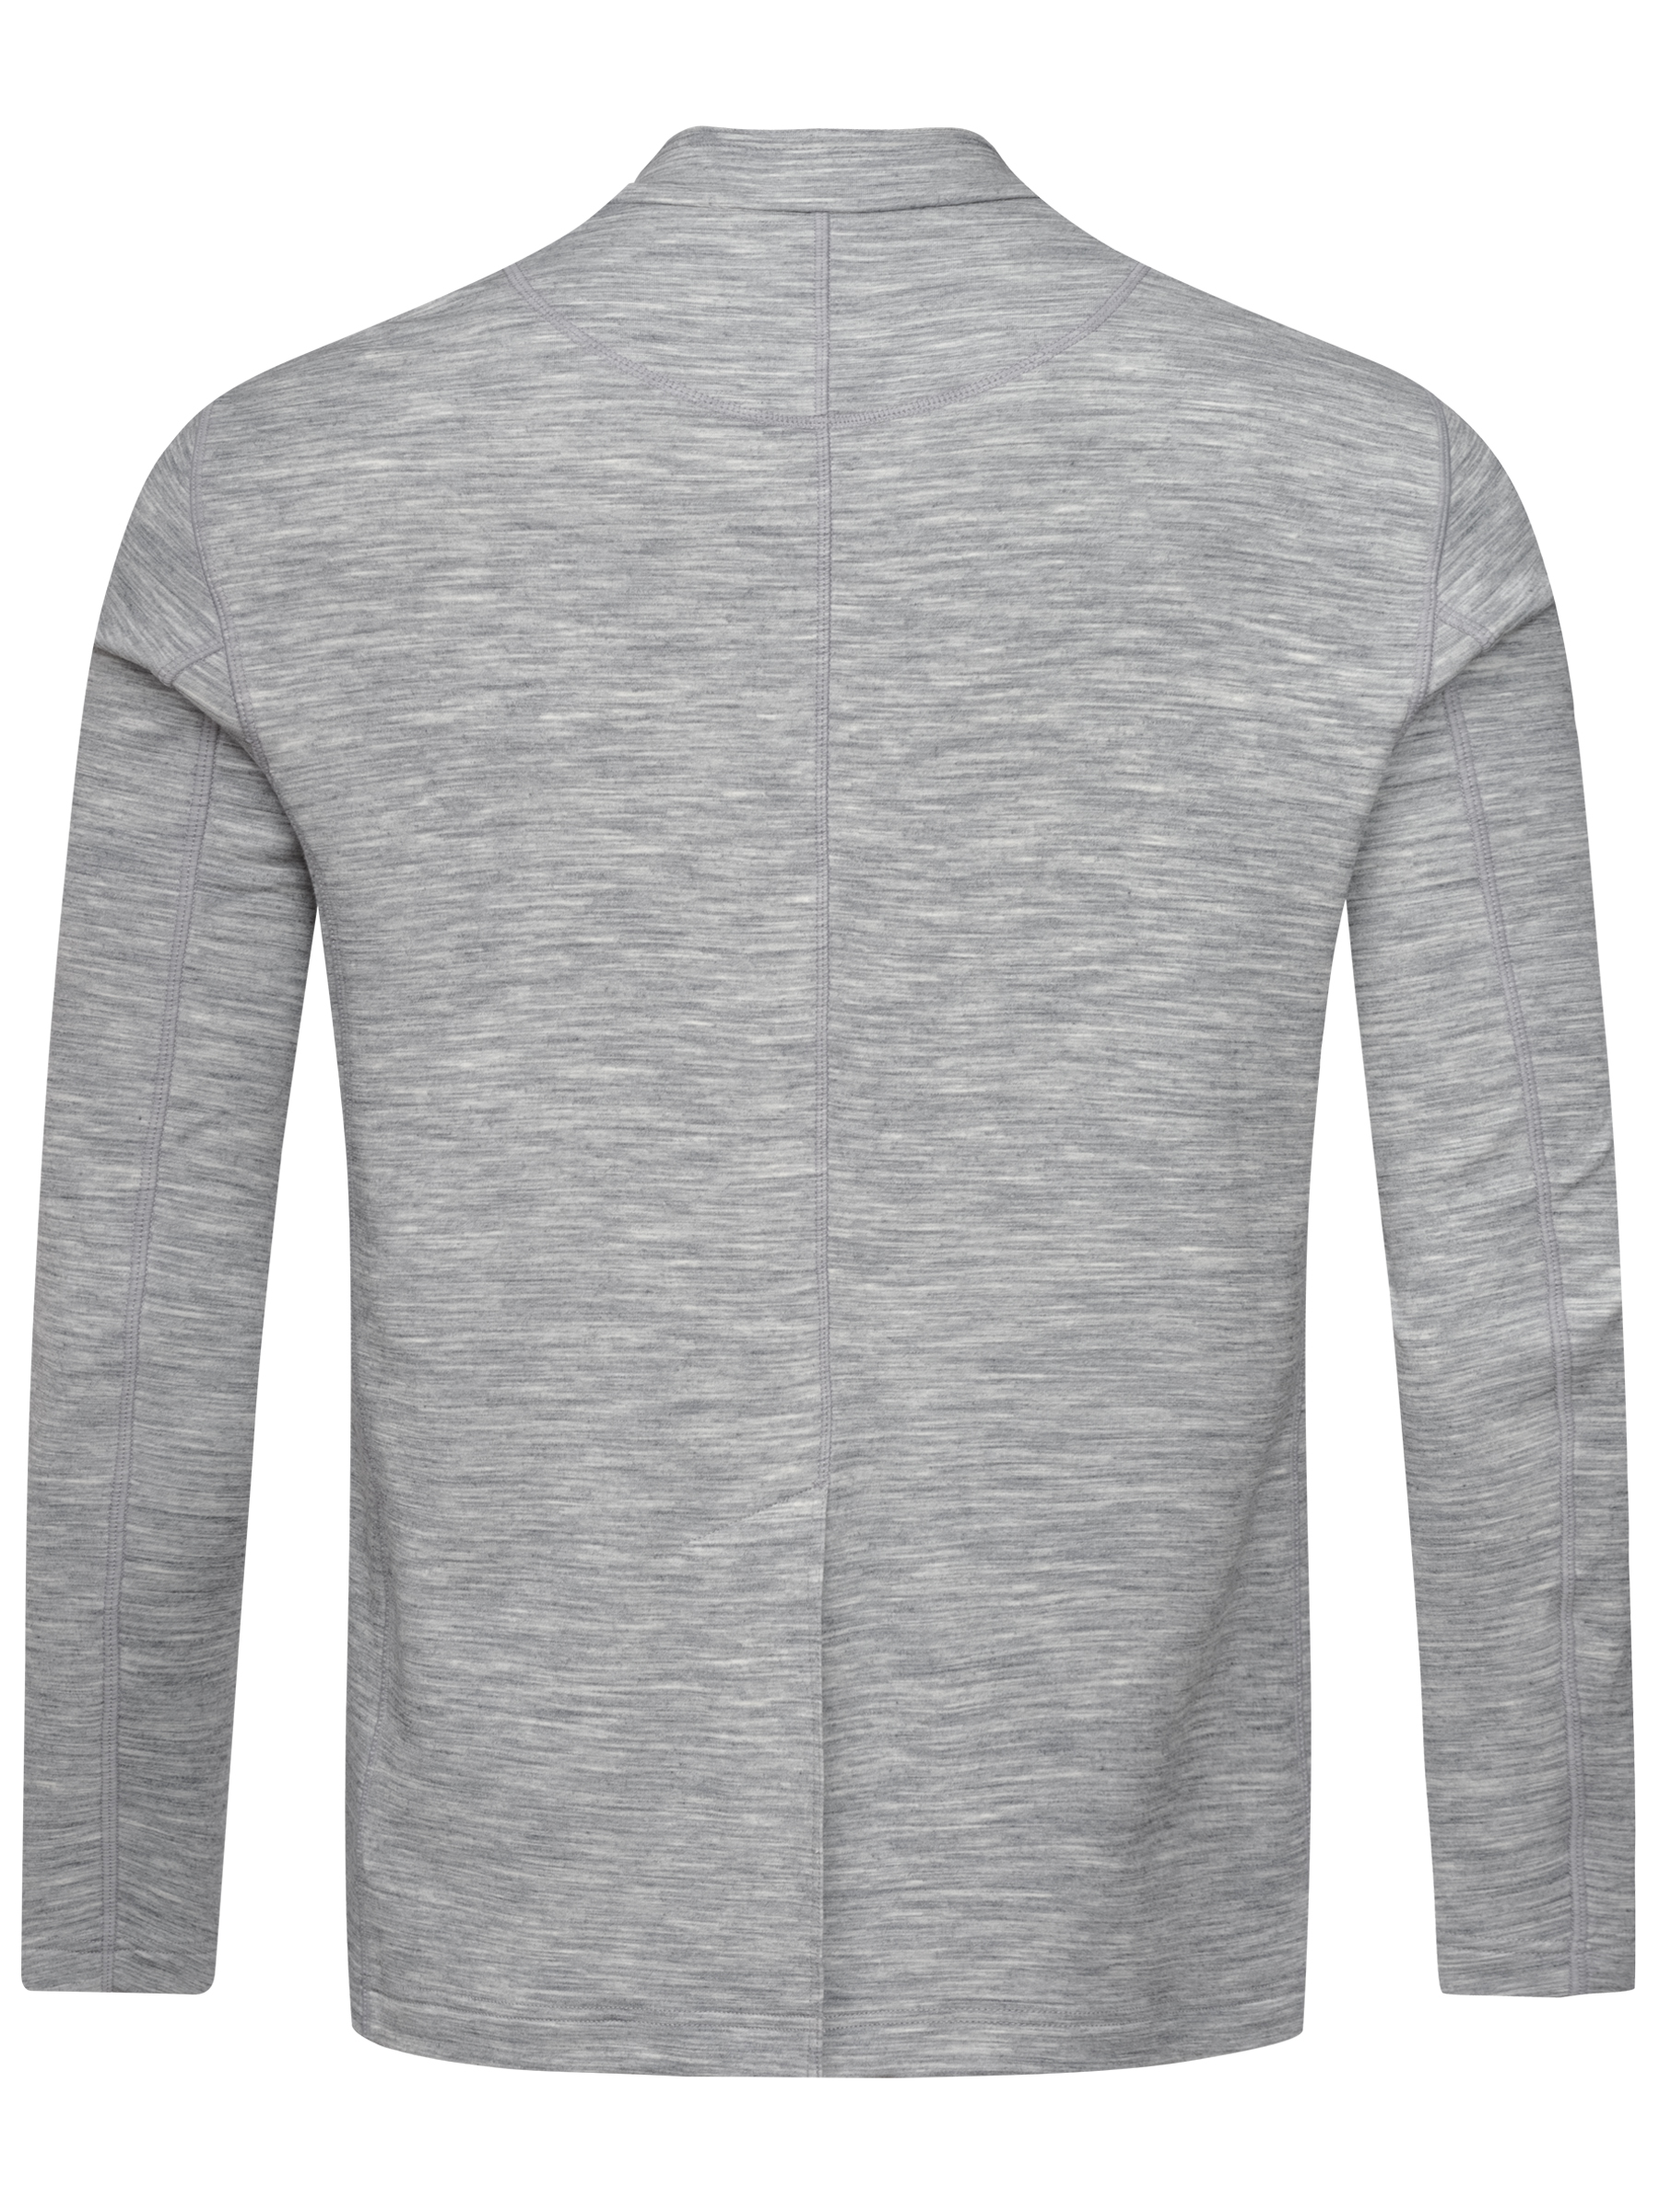 M WENGER RAISED | Super.Natural Merino Made Better